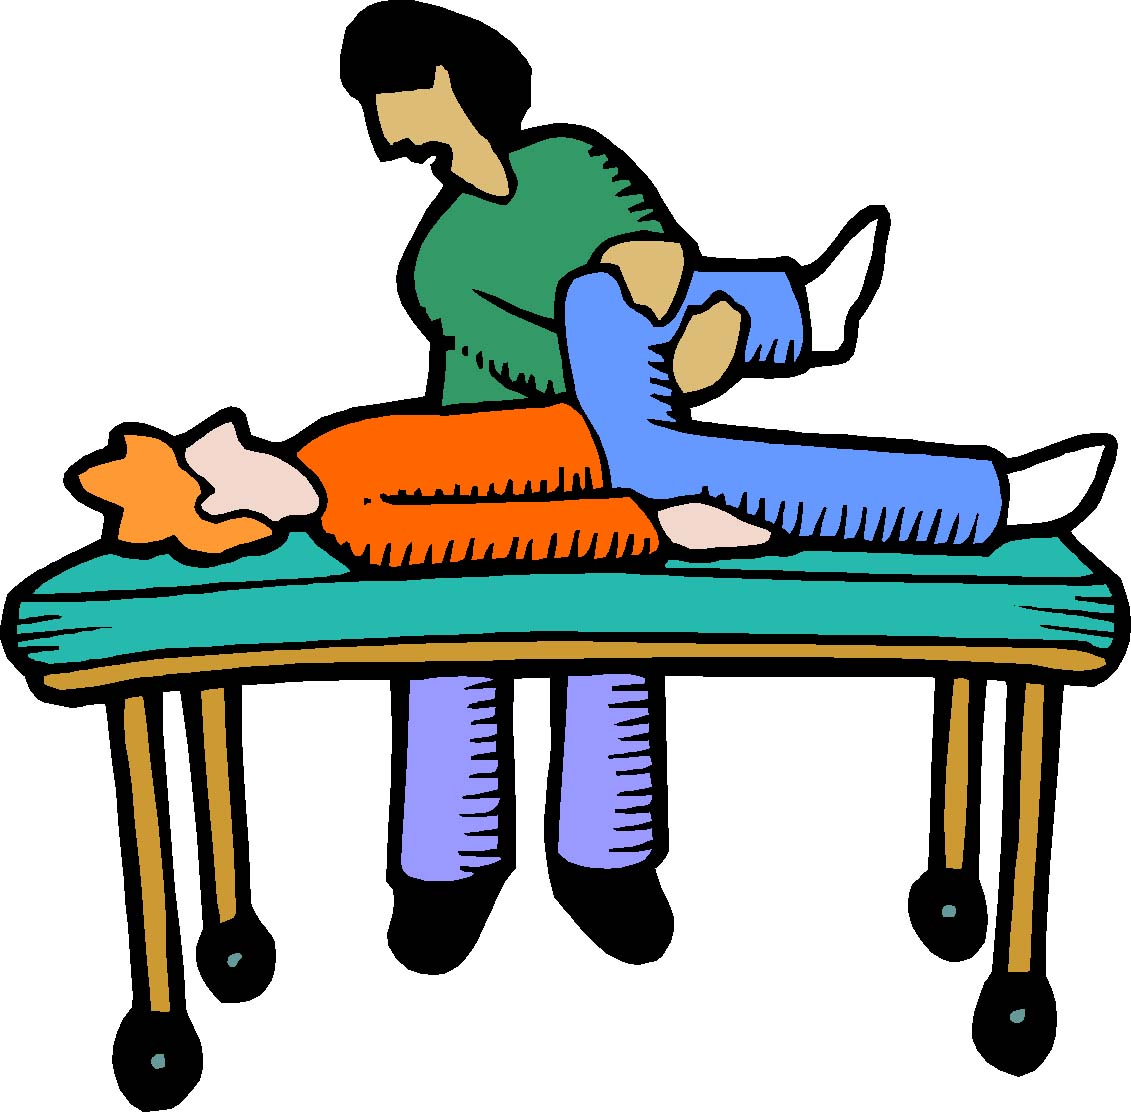 Physical Therapy Clip Art N2 free image.